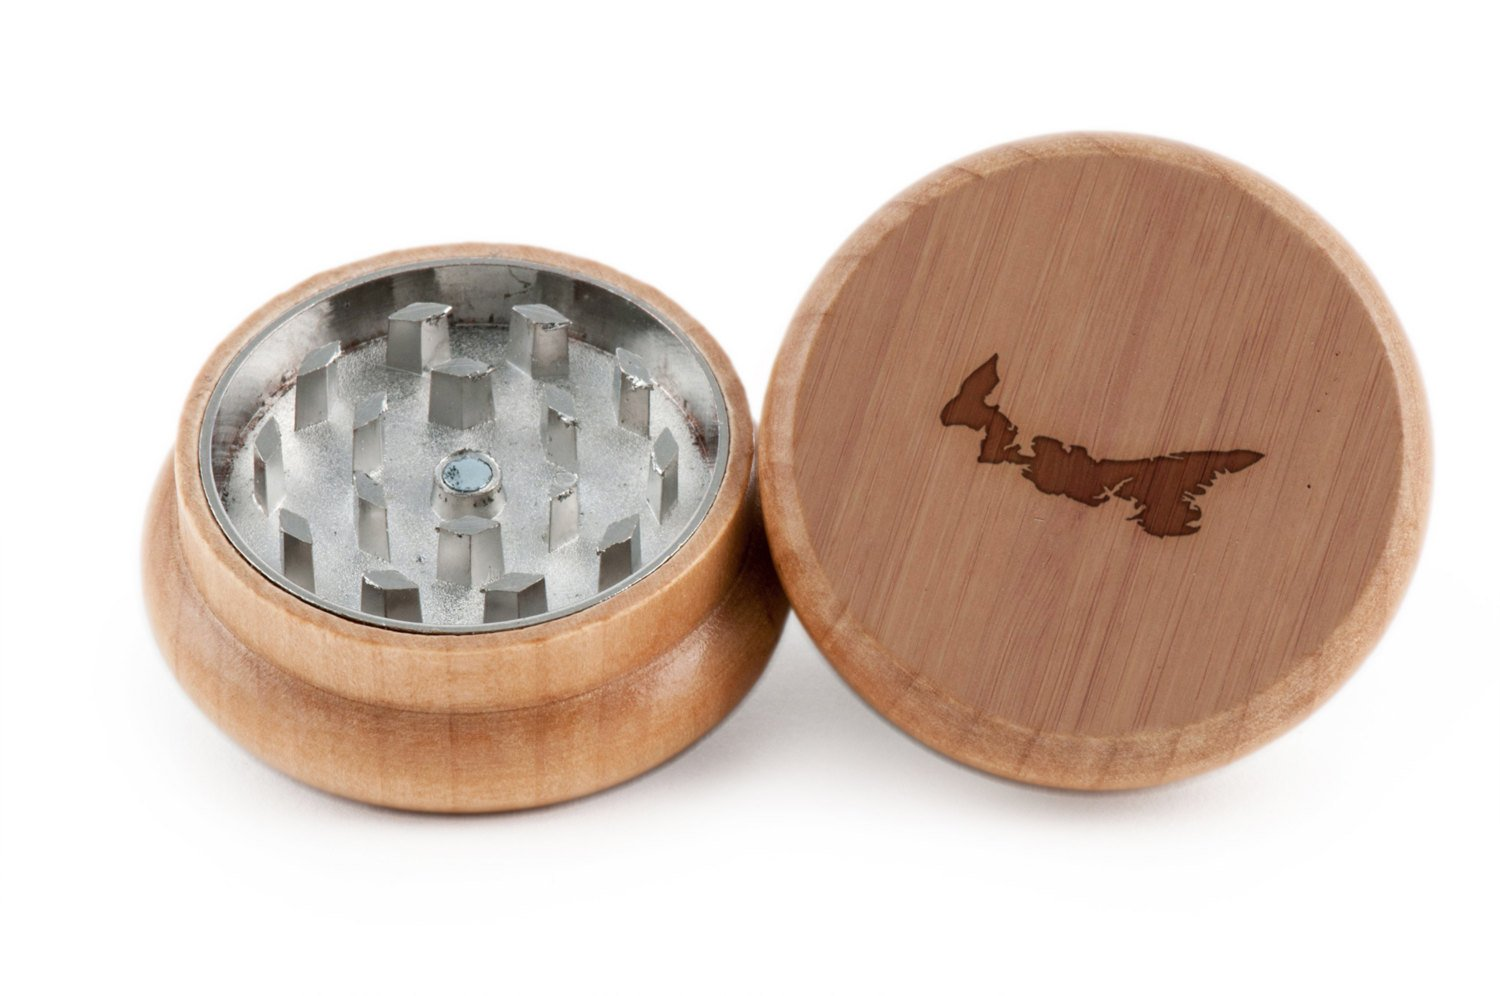 Prince Edward Island Herb and Spice Grinder - 2 Piece Wood Grinder with Laser Etched Designs - Made with Oak (2 Inches) GrindCandy